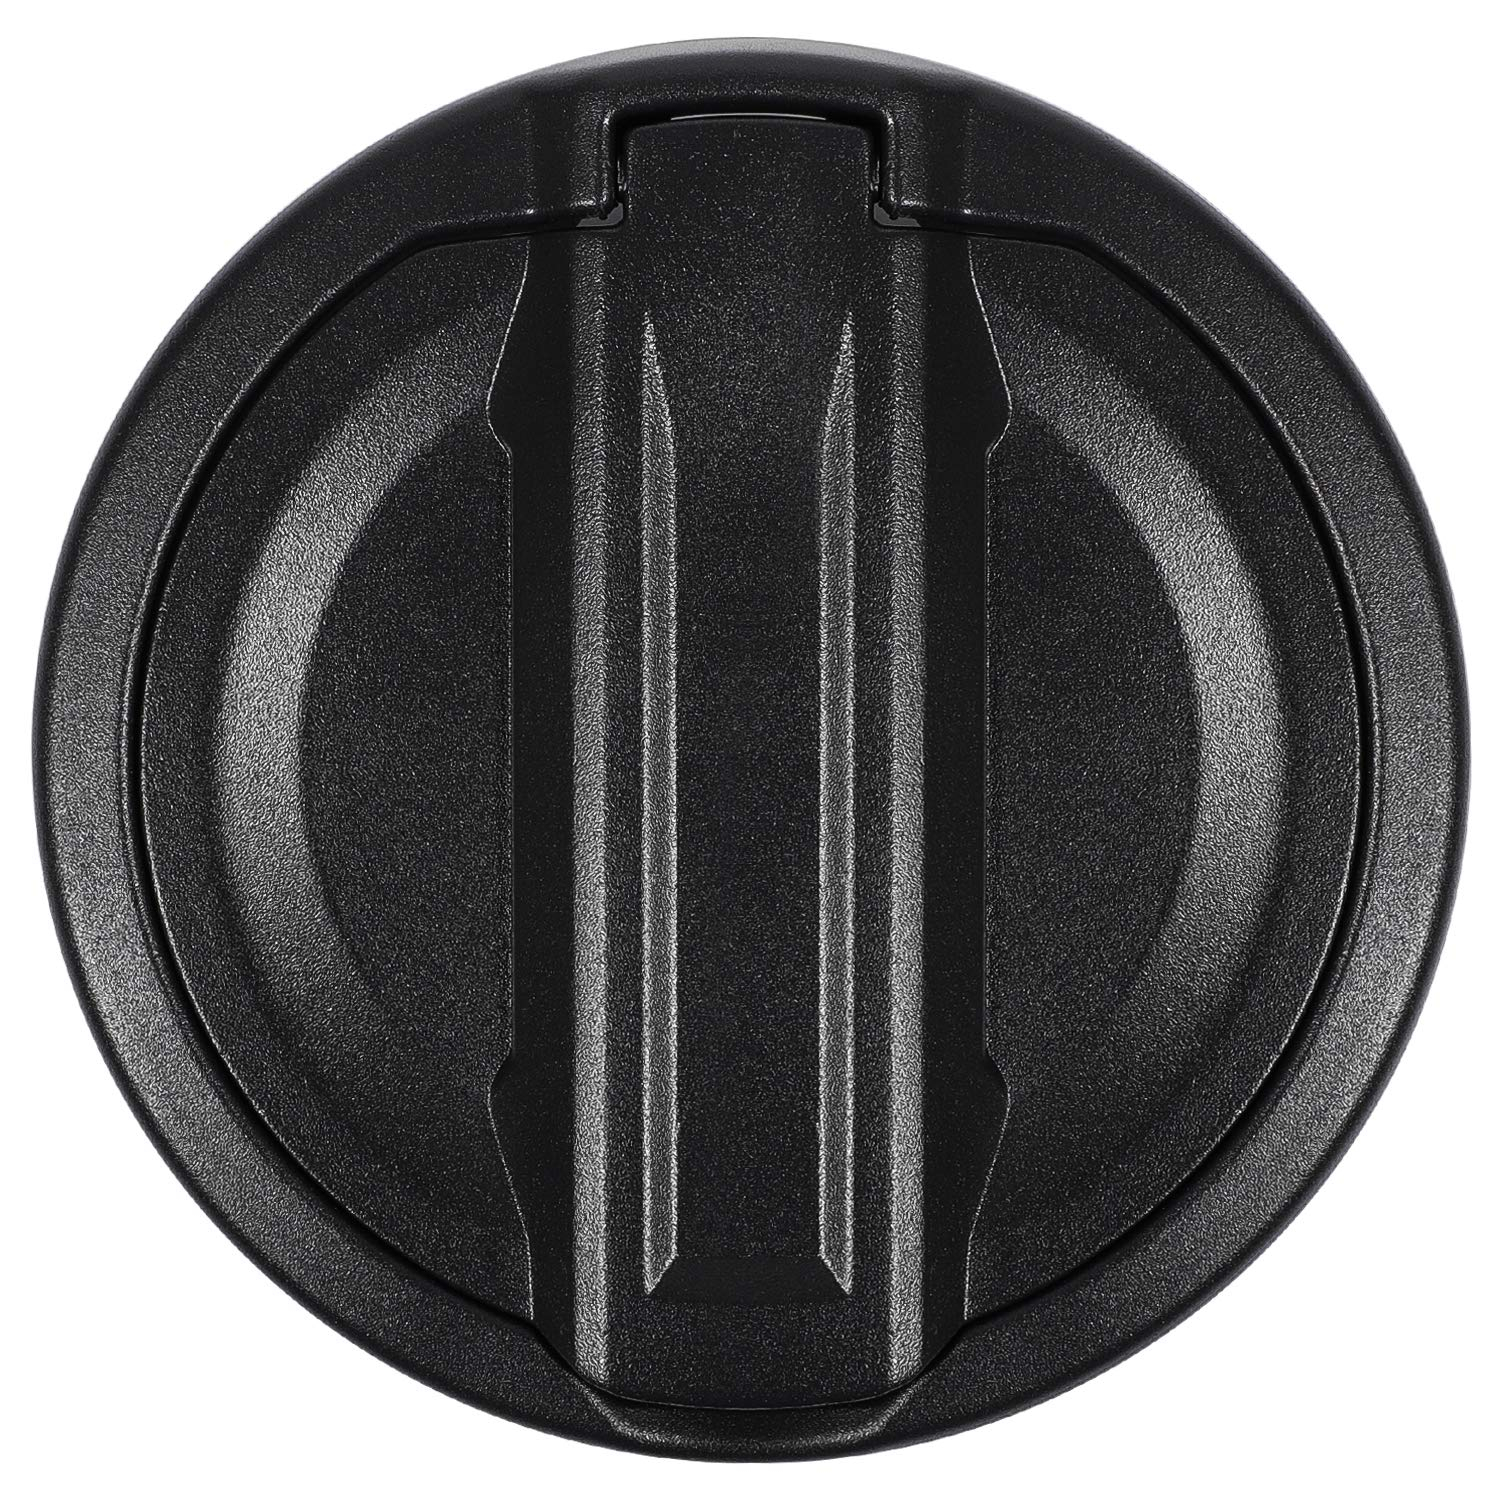 Gas Tank Cap Cover Aluminum Fuel Tank Cover Fuel Filler Door Cover for Jeep Wrangler 2018 2019 JL JLU